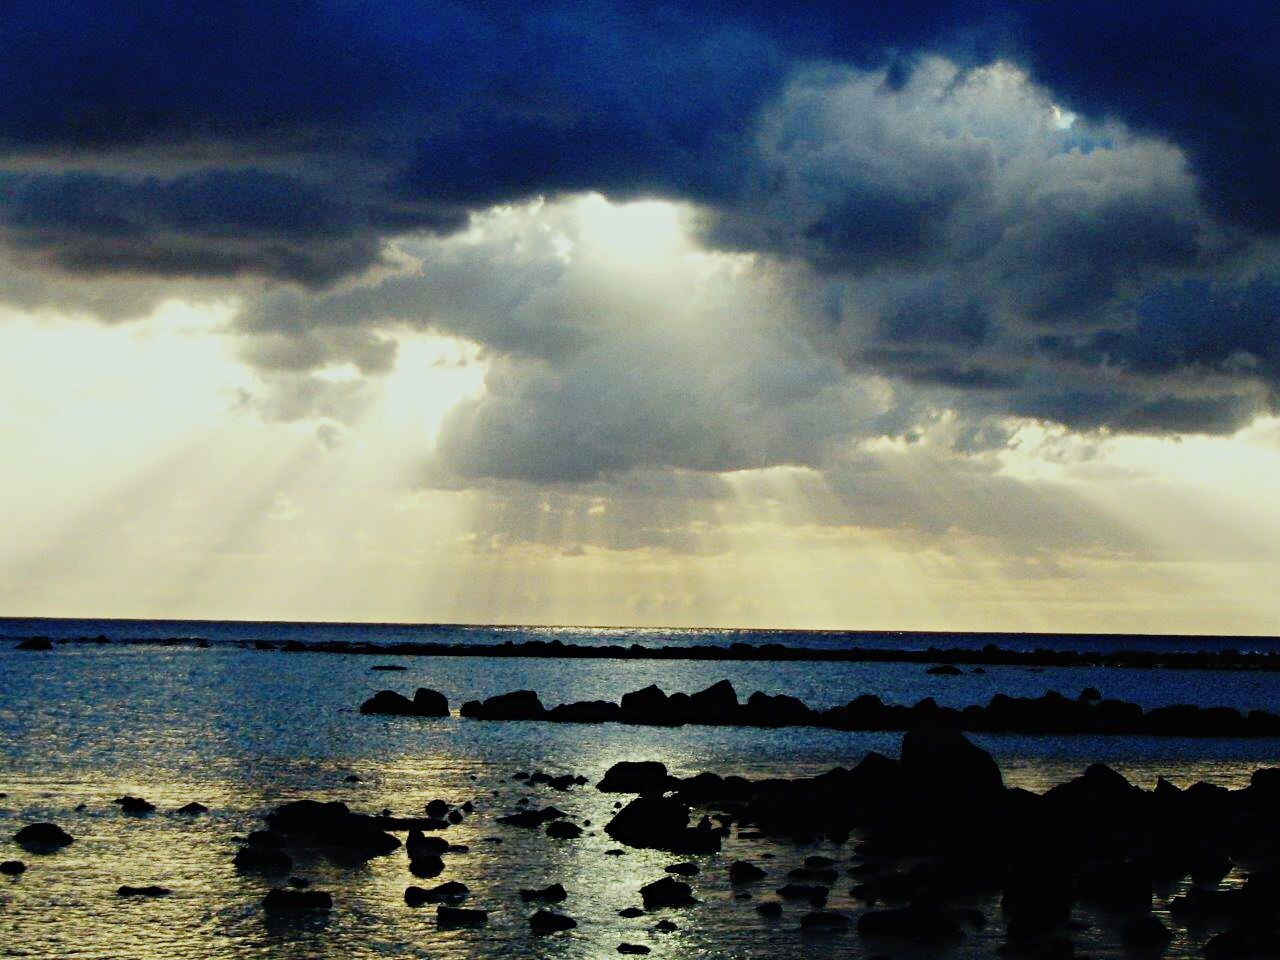 sky, cloud - sky, sea, water, tranquil scene, tranquility, nature, scenics, beauty in nature, no people, horizon over water, outdoors, day